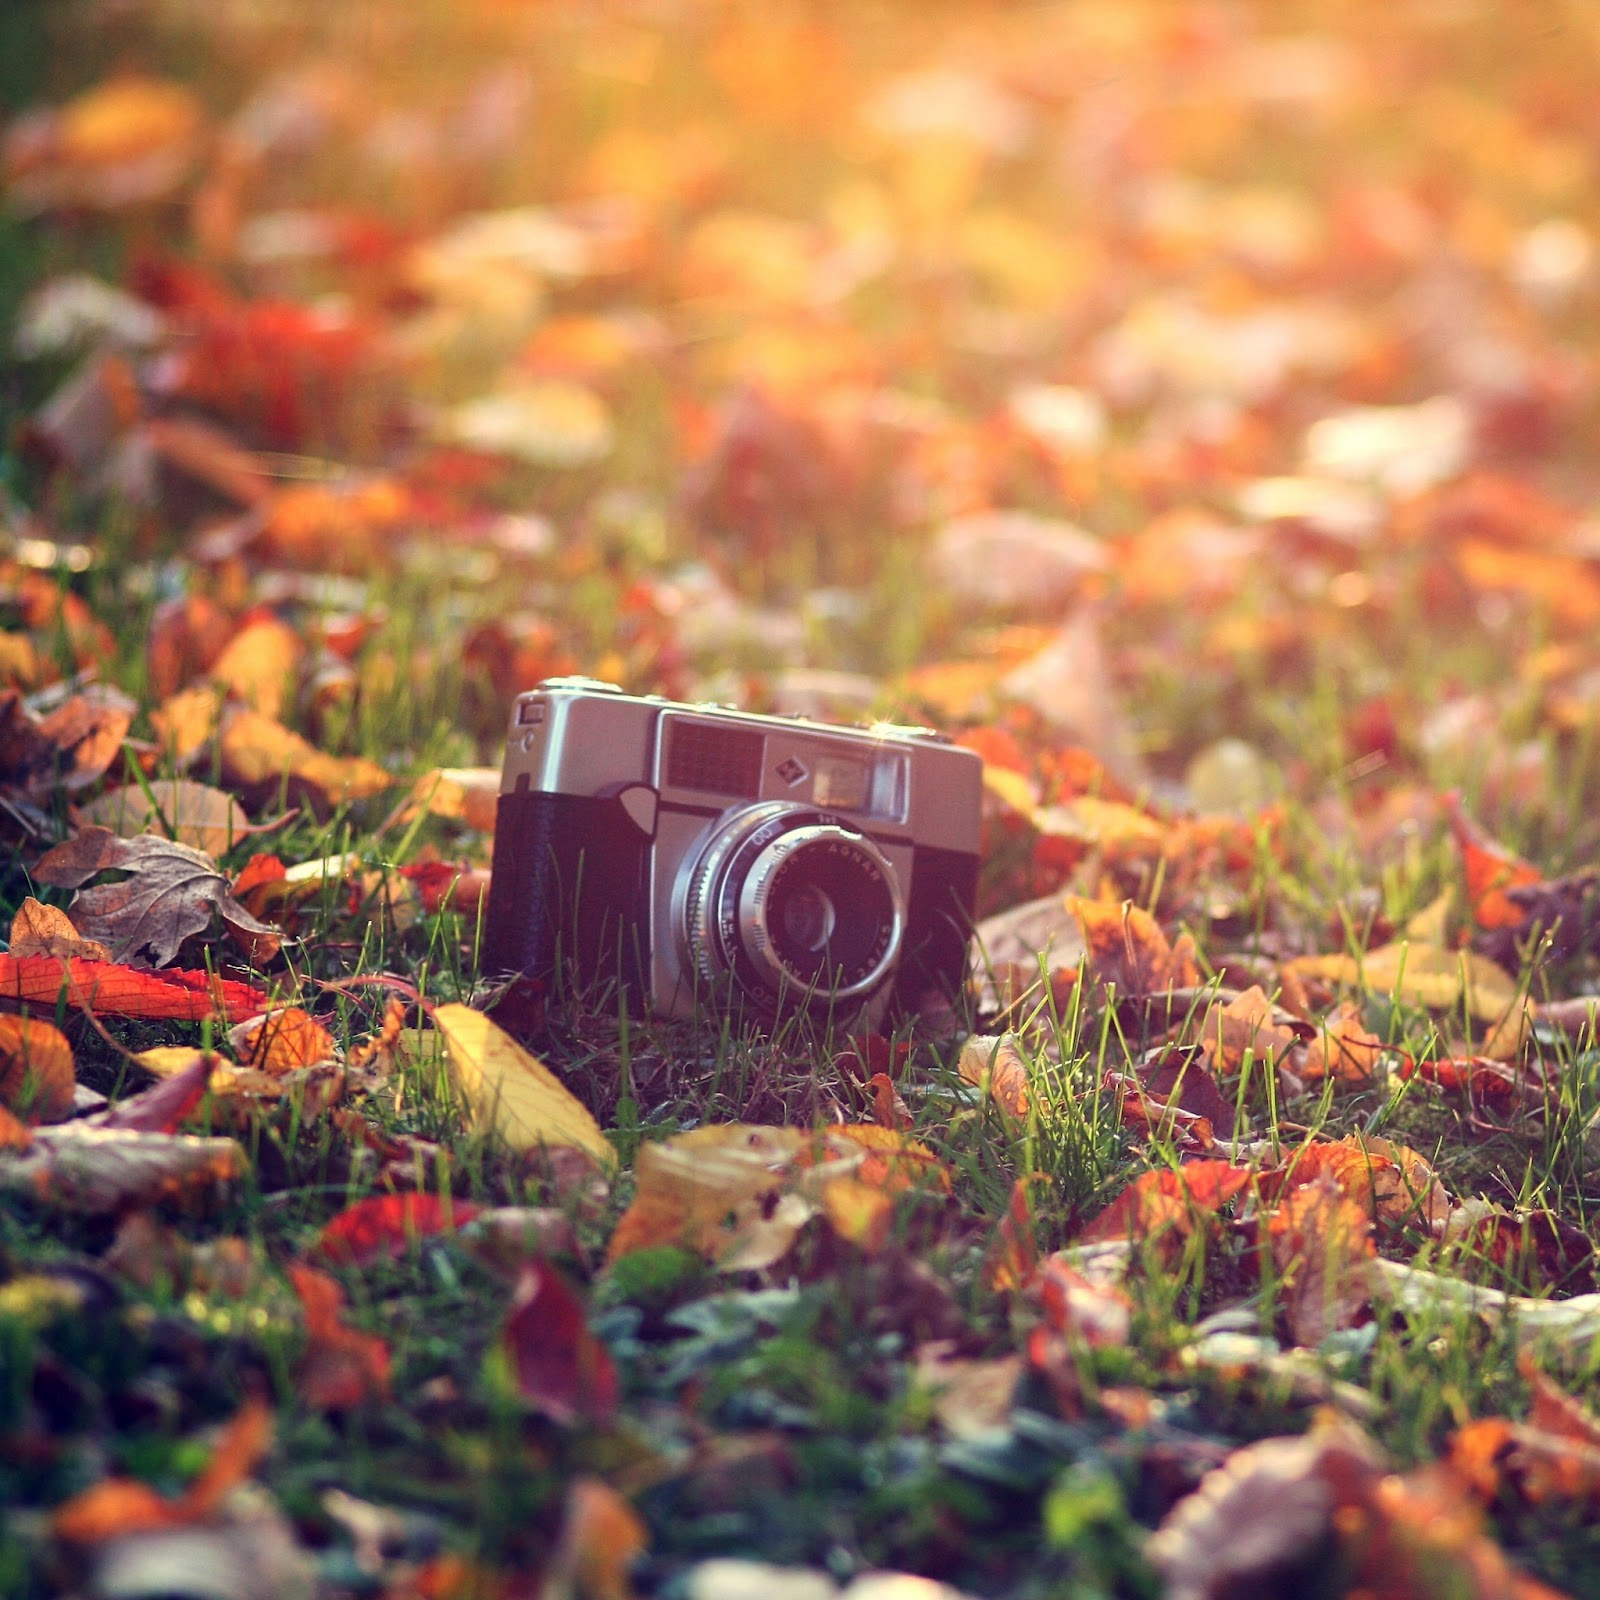 Fresh New Fall Hd Wallpapers Autumn Themed Hd Wallpapers For The New Ipad Gadgets